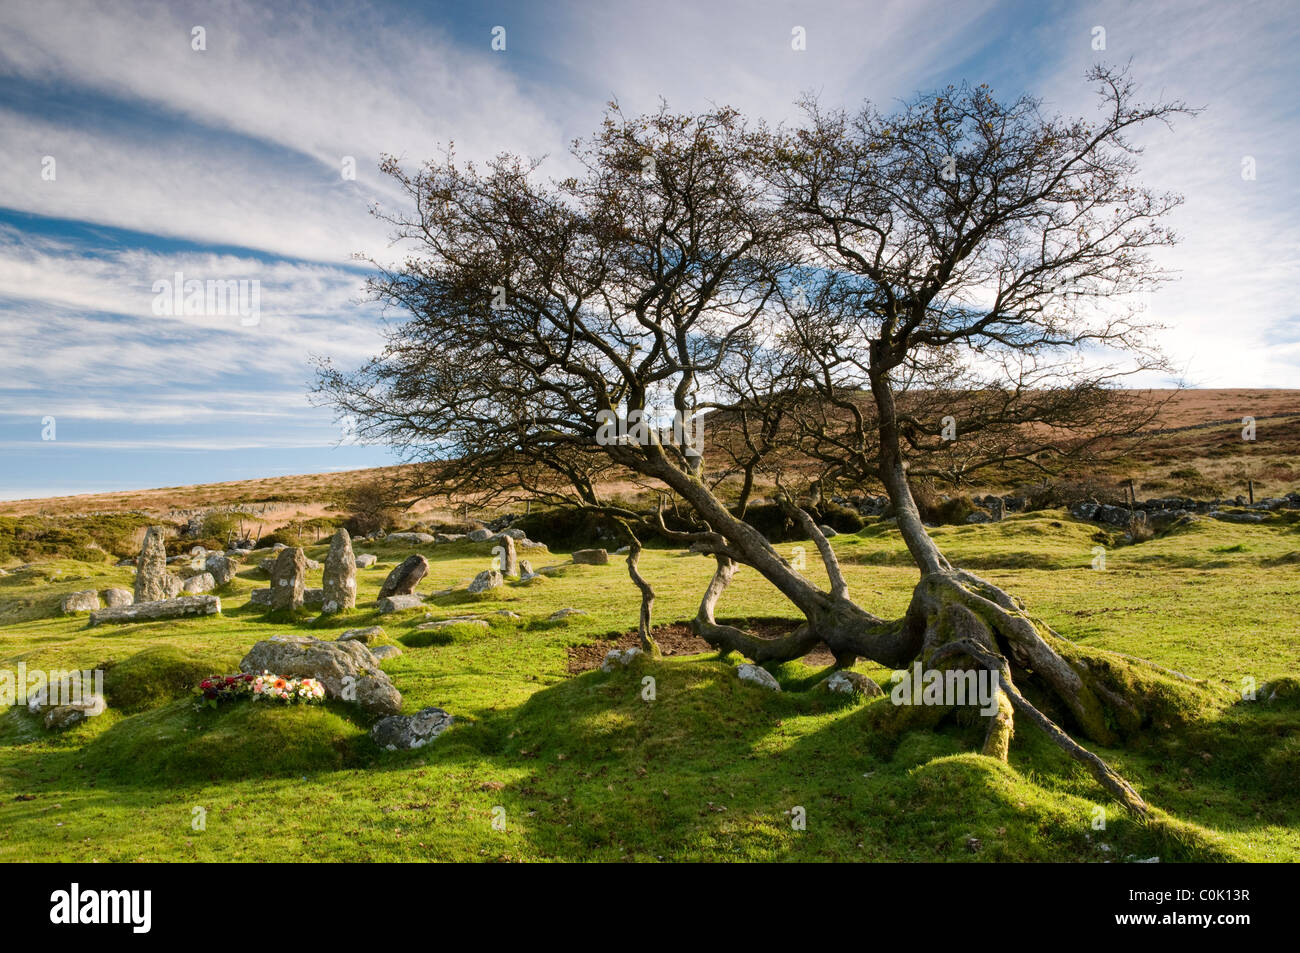 Rocks and Hawthorn Tree near Cold East Cross, Rippon Tor, Dartmoor - Stock Image